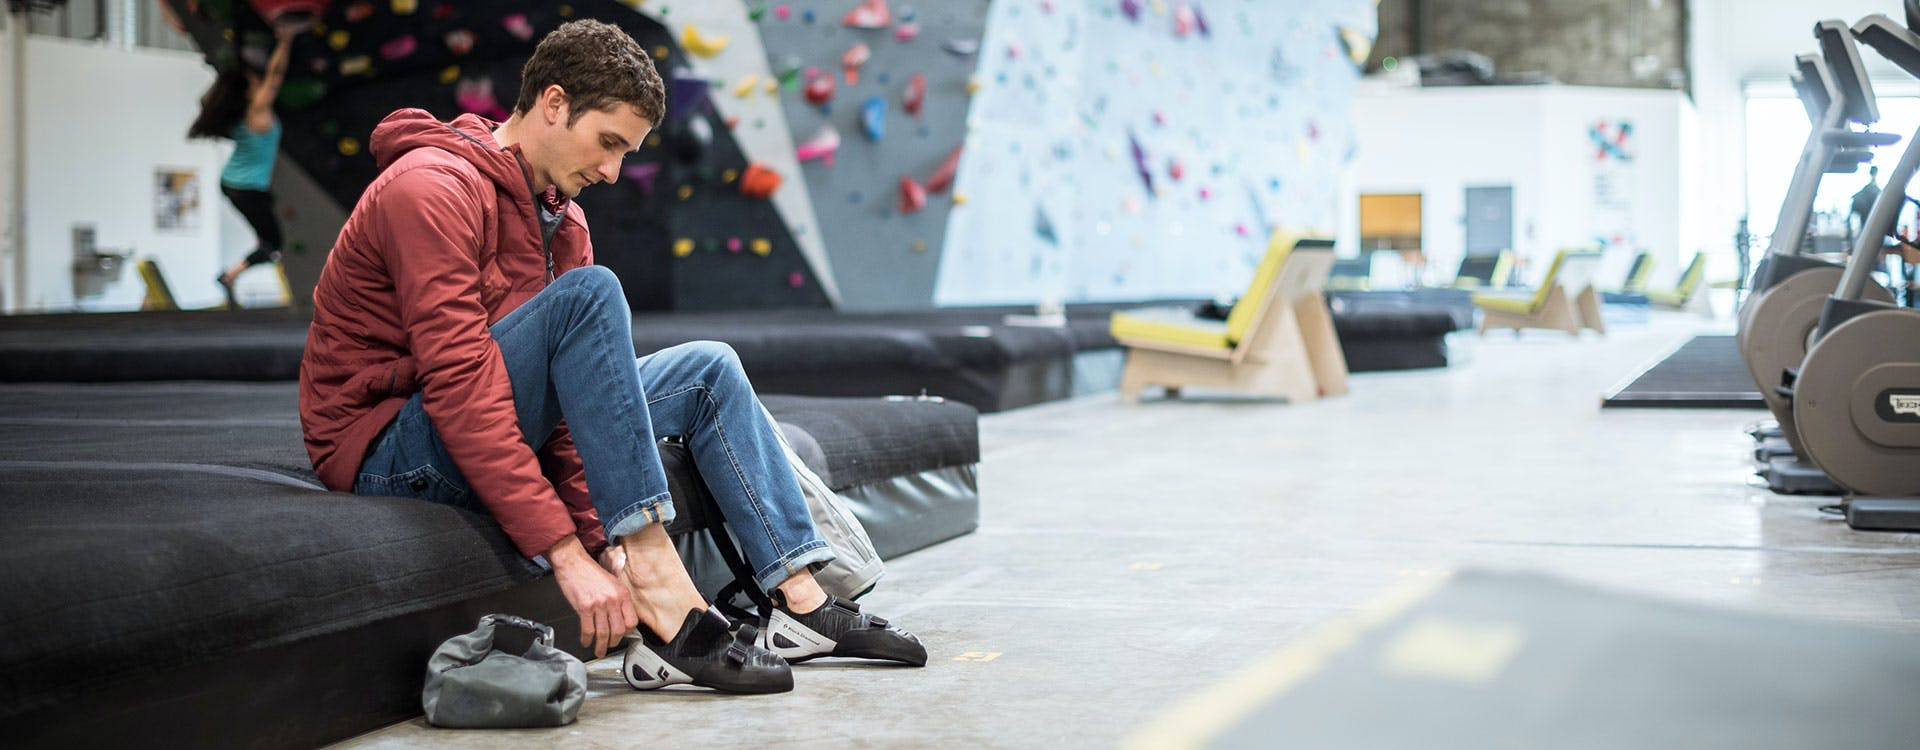 man putting on climbing shoes